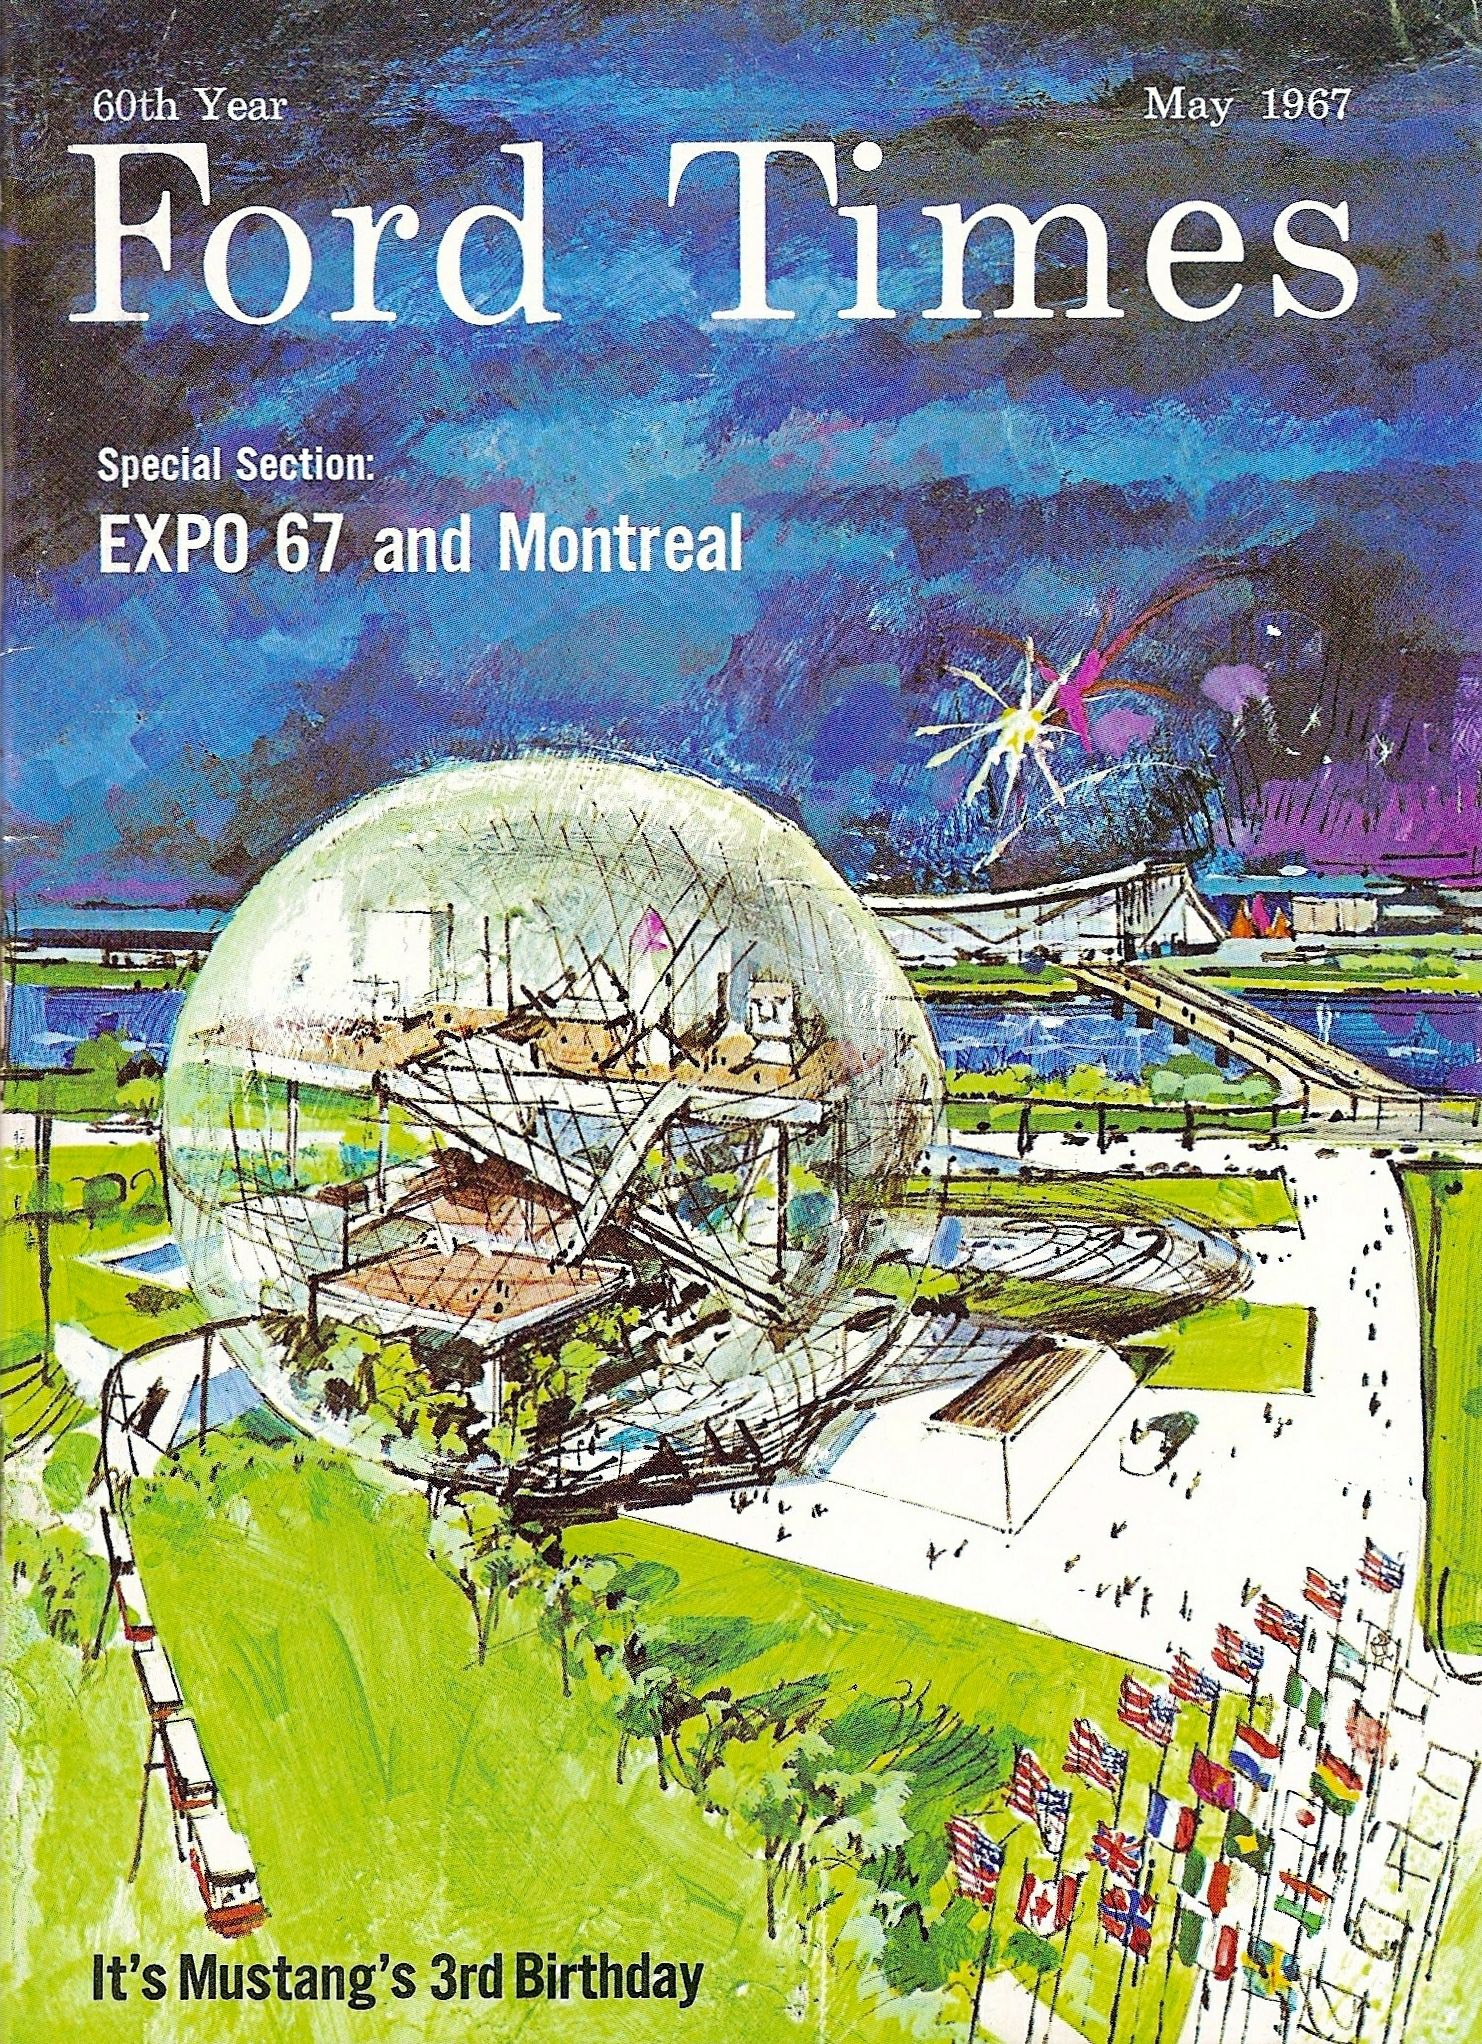 Pin by Jordan Kennedy on EXPO '67 Montreal in 2019 | Expo 67 ... Montreal World Map Wikipedia on world map health, world map countries by gdp, world map with borders, world map sports, world map wikimedia, world map genealogy, spain wikipedia, world map history, world map pandora, world map instagram, world map shopping, world map showing all countries, world map book, world map games, world map events, world map tv, world map search, world map deviantart, world map maps, world map youtube,